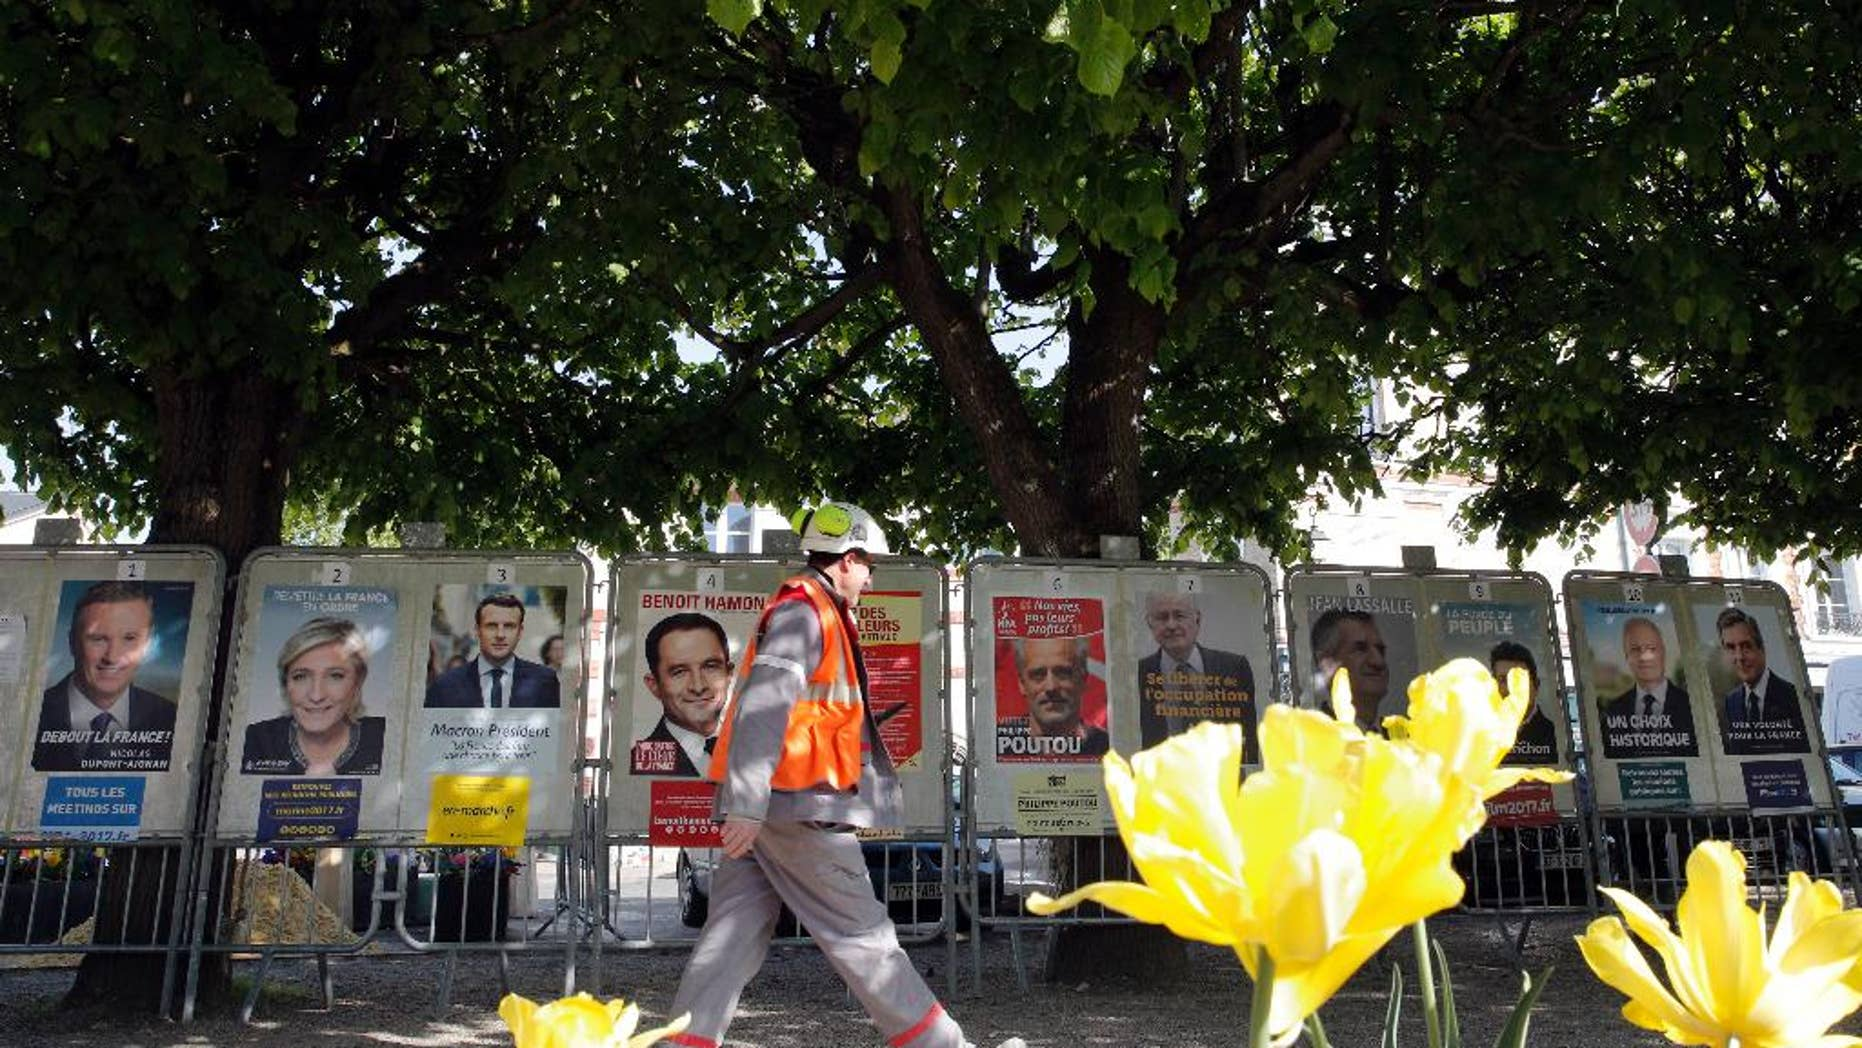 A man walks past French presidential campaign posters displayed in Marnes-la-Coquette, outside Paris, Thursday, April 20, 2017. The two-round presidential election is set for April 23 and May 7. (AP Photo/Christophe Ena)